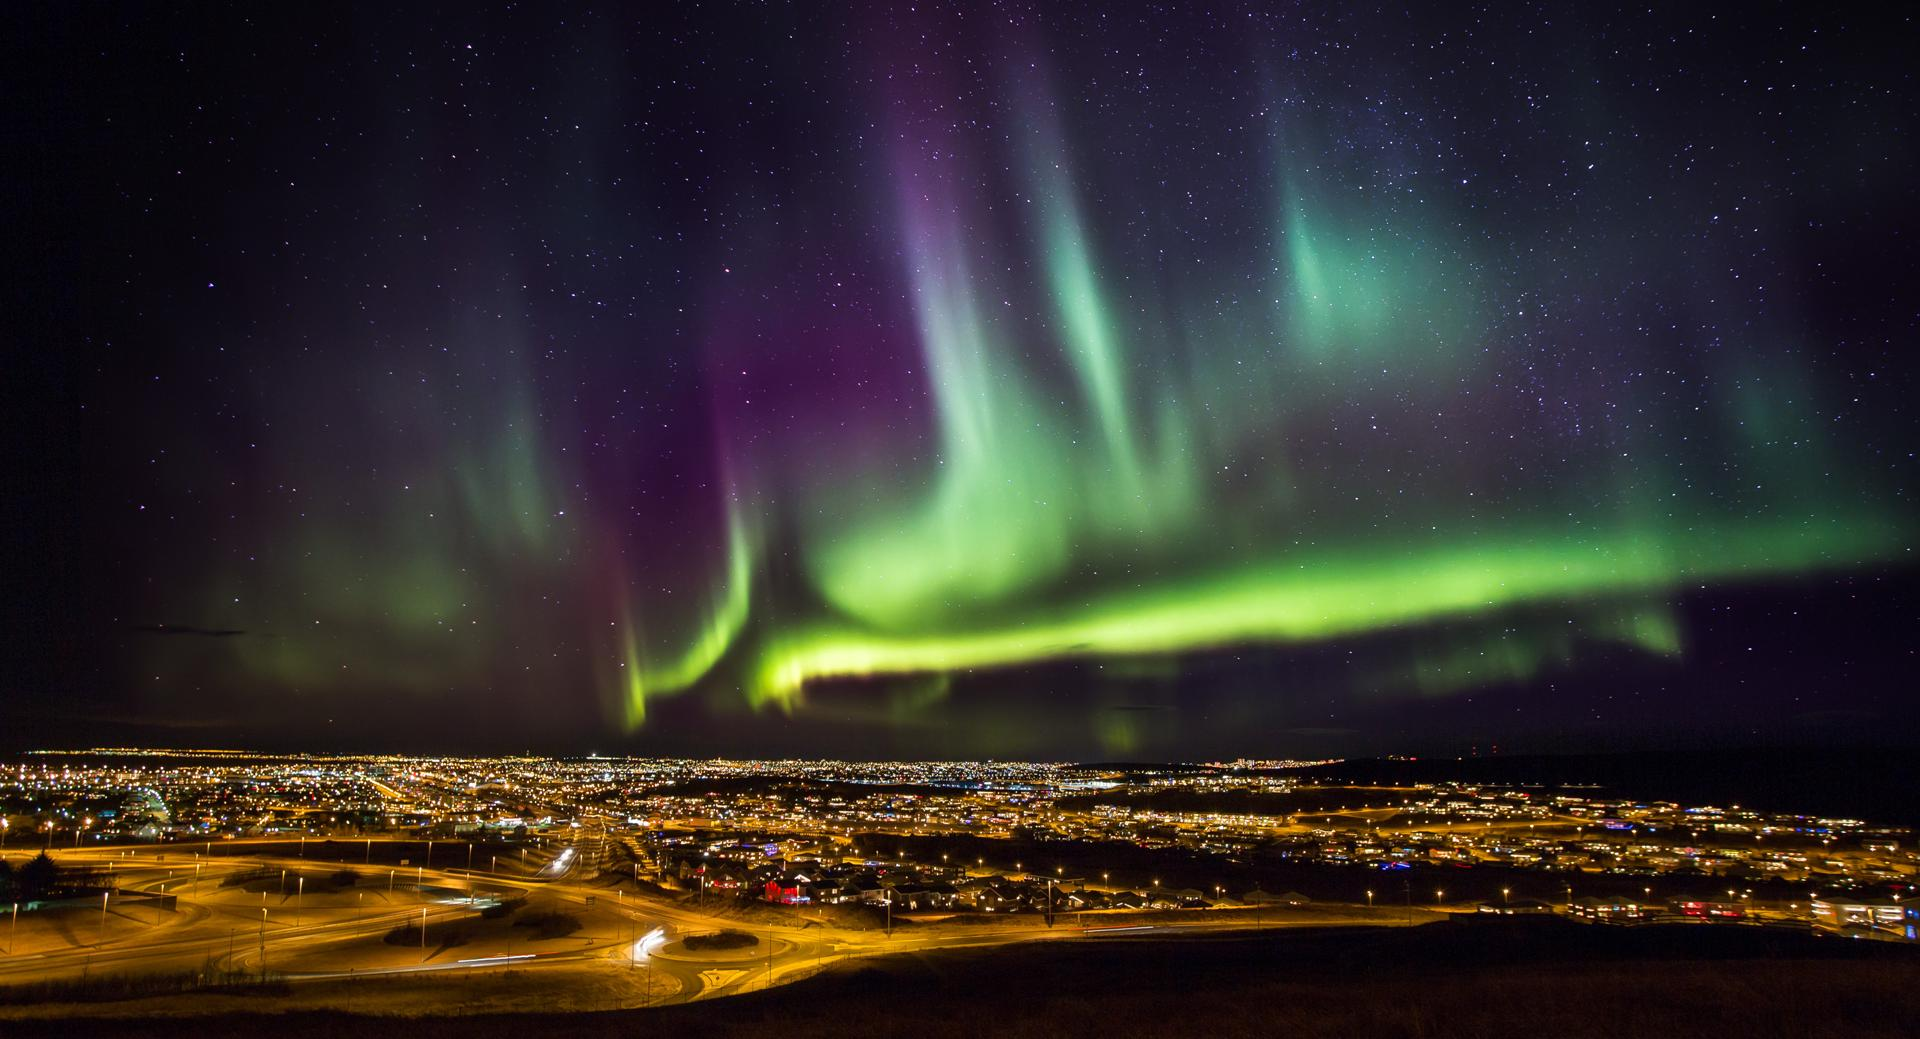 Iceland Northern Lights - Aurora